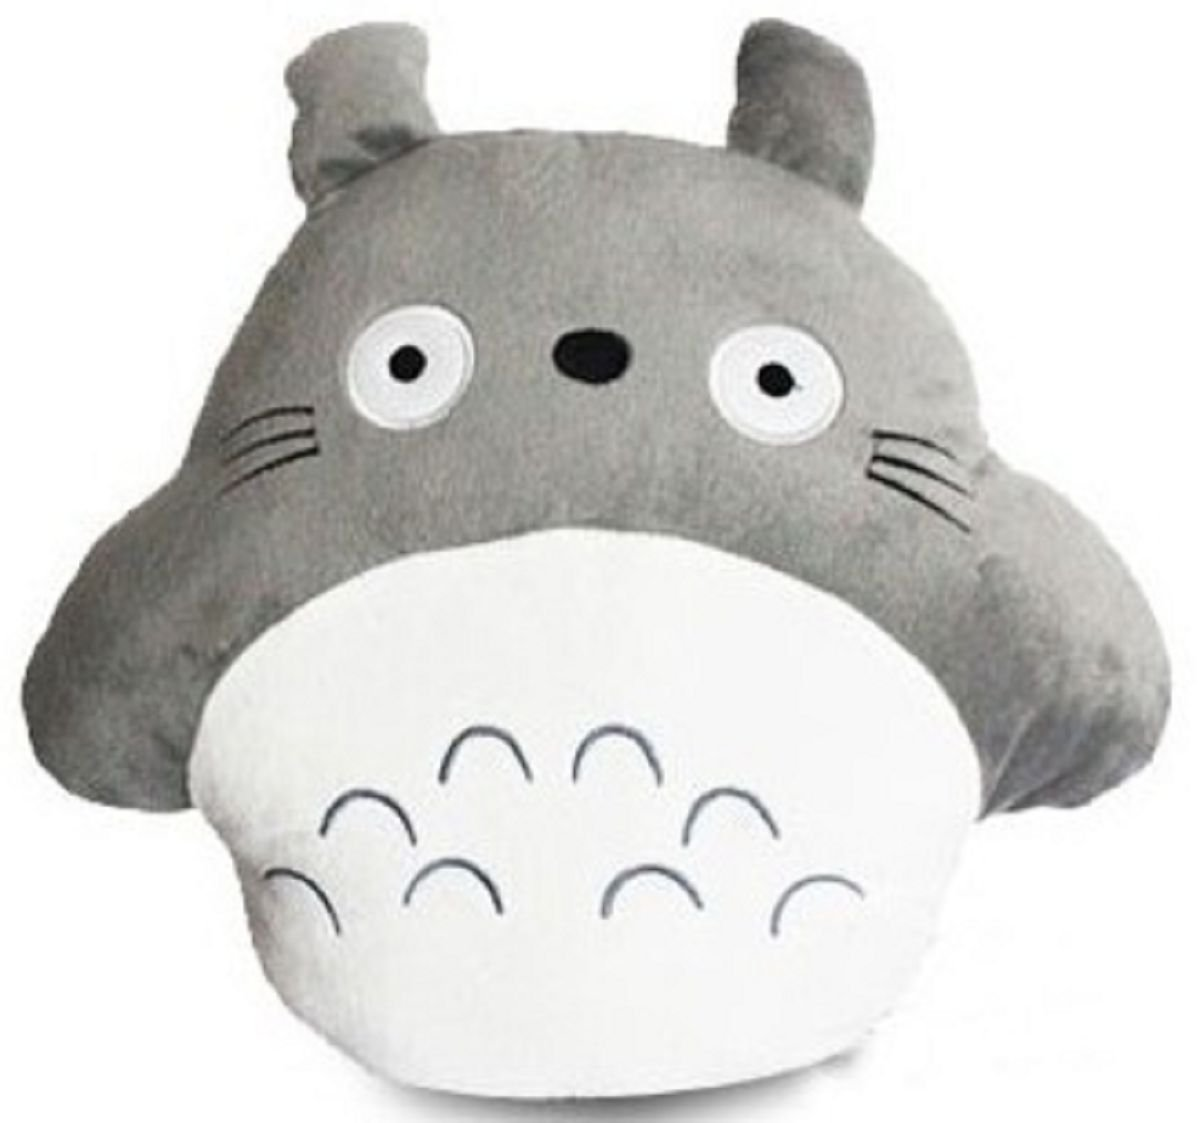 Amazon.com: stuffwholesale Fluffy Plush totoro Throw ...